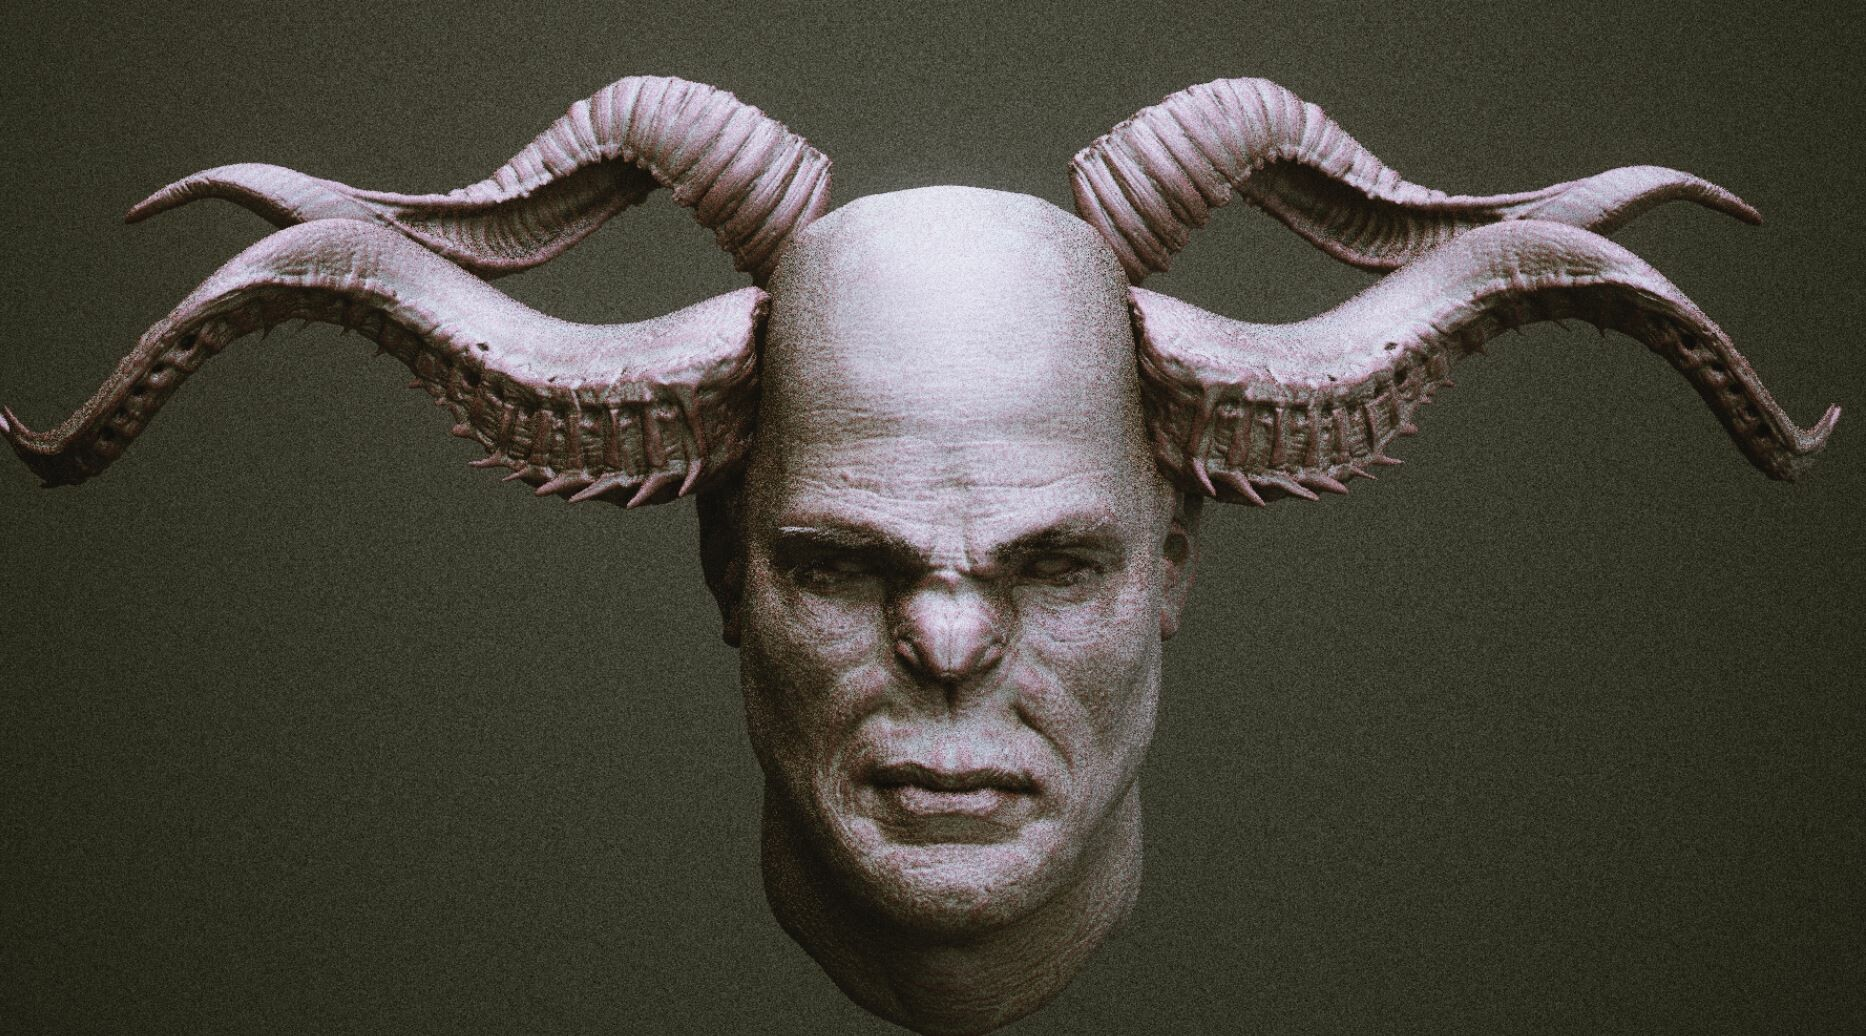 ArtStation - Creature Feature Volume 5 : HORNS, Bernhard van